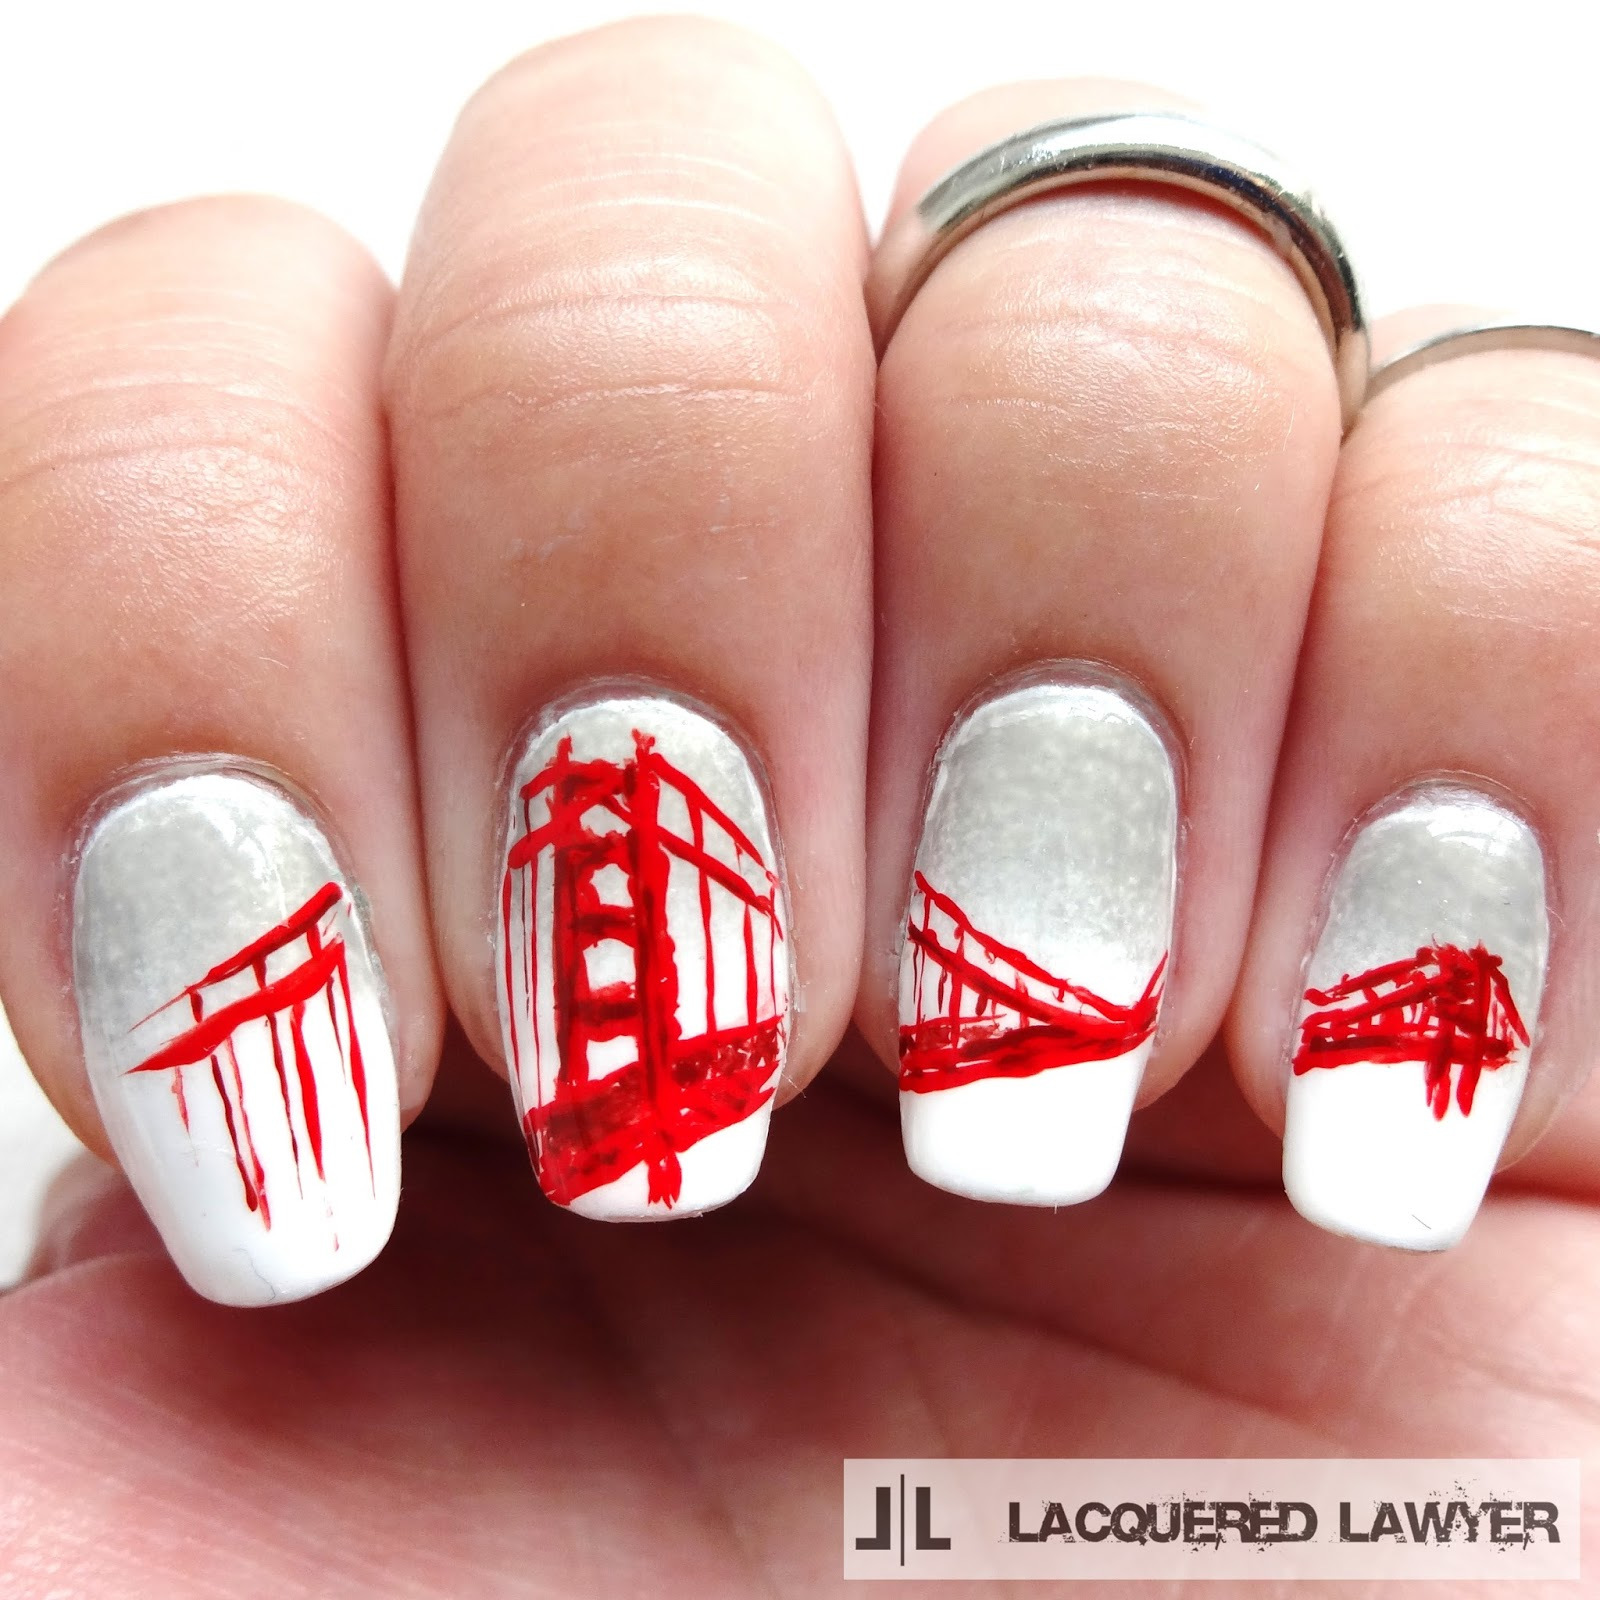 Lacquered Lawyer | Nail Art Blog: Golden Gate Bridge